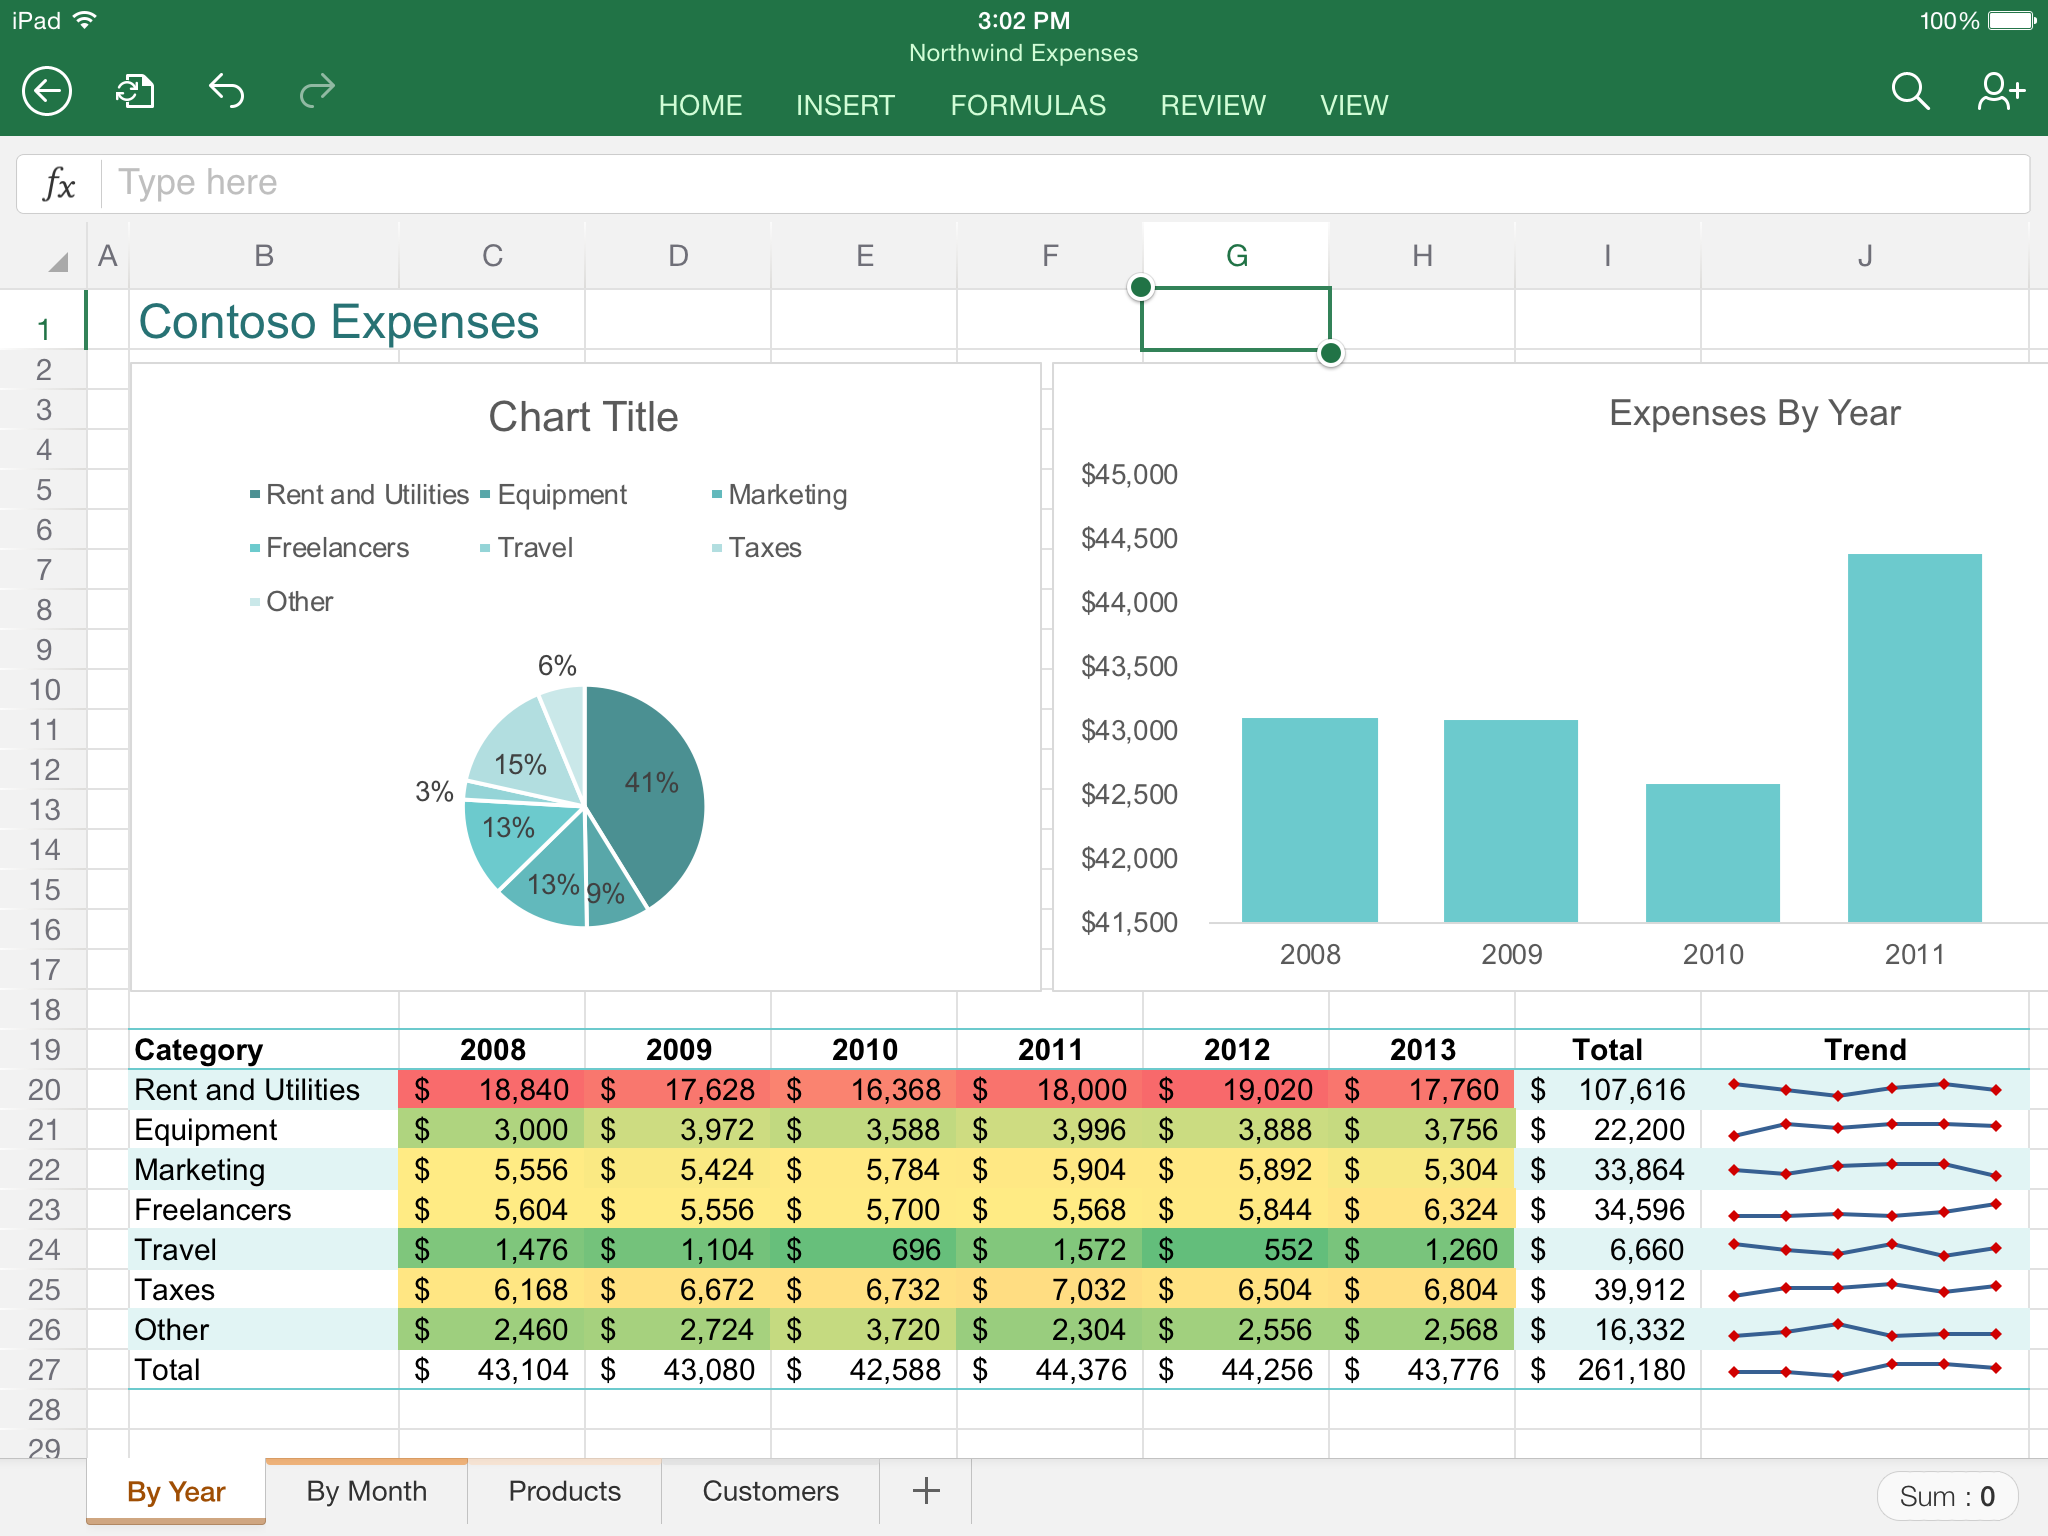 Ediblewildsus  Surprising App Highlight Excel  Mobile Digital Now With Likable Excel In Action With Comely Payroll Excel Also Excel Counting Cells In Addition Excel Organizational Chart Template And Excel If Statement String As Well As Toolpak Excel Mac Additionally How To Find Npv In Excel From Youstonybrookedu With Ediblewildsus  Likable App Highlight Excel  Mobile Digital Now With Comely Excel In Action And Surprising Payroll Excel Also Excel Counting Cells In Addition Excel Organizational Chart Template From Youstonybrookedu